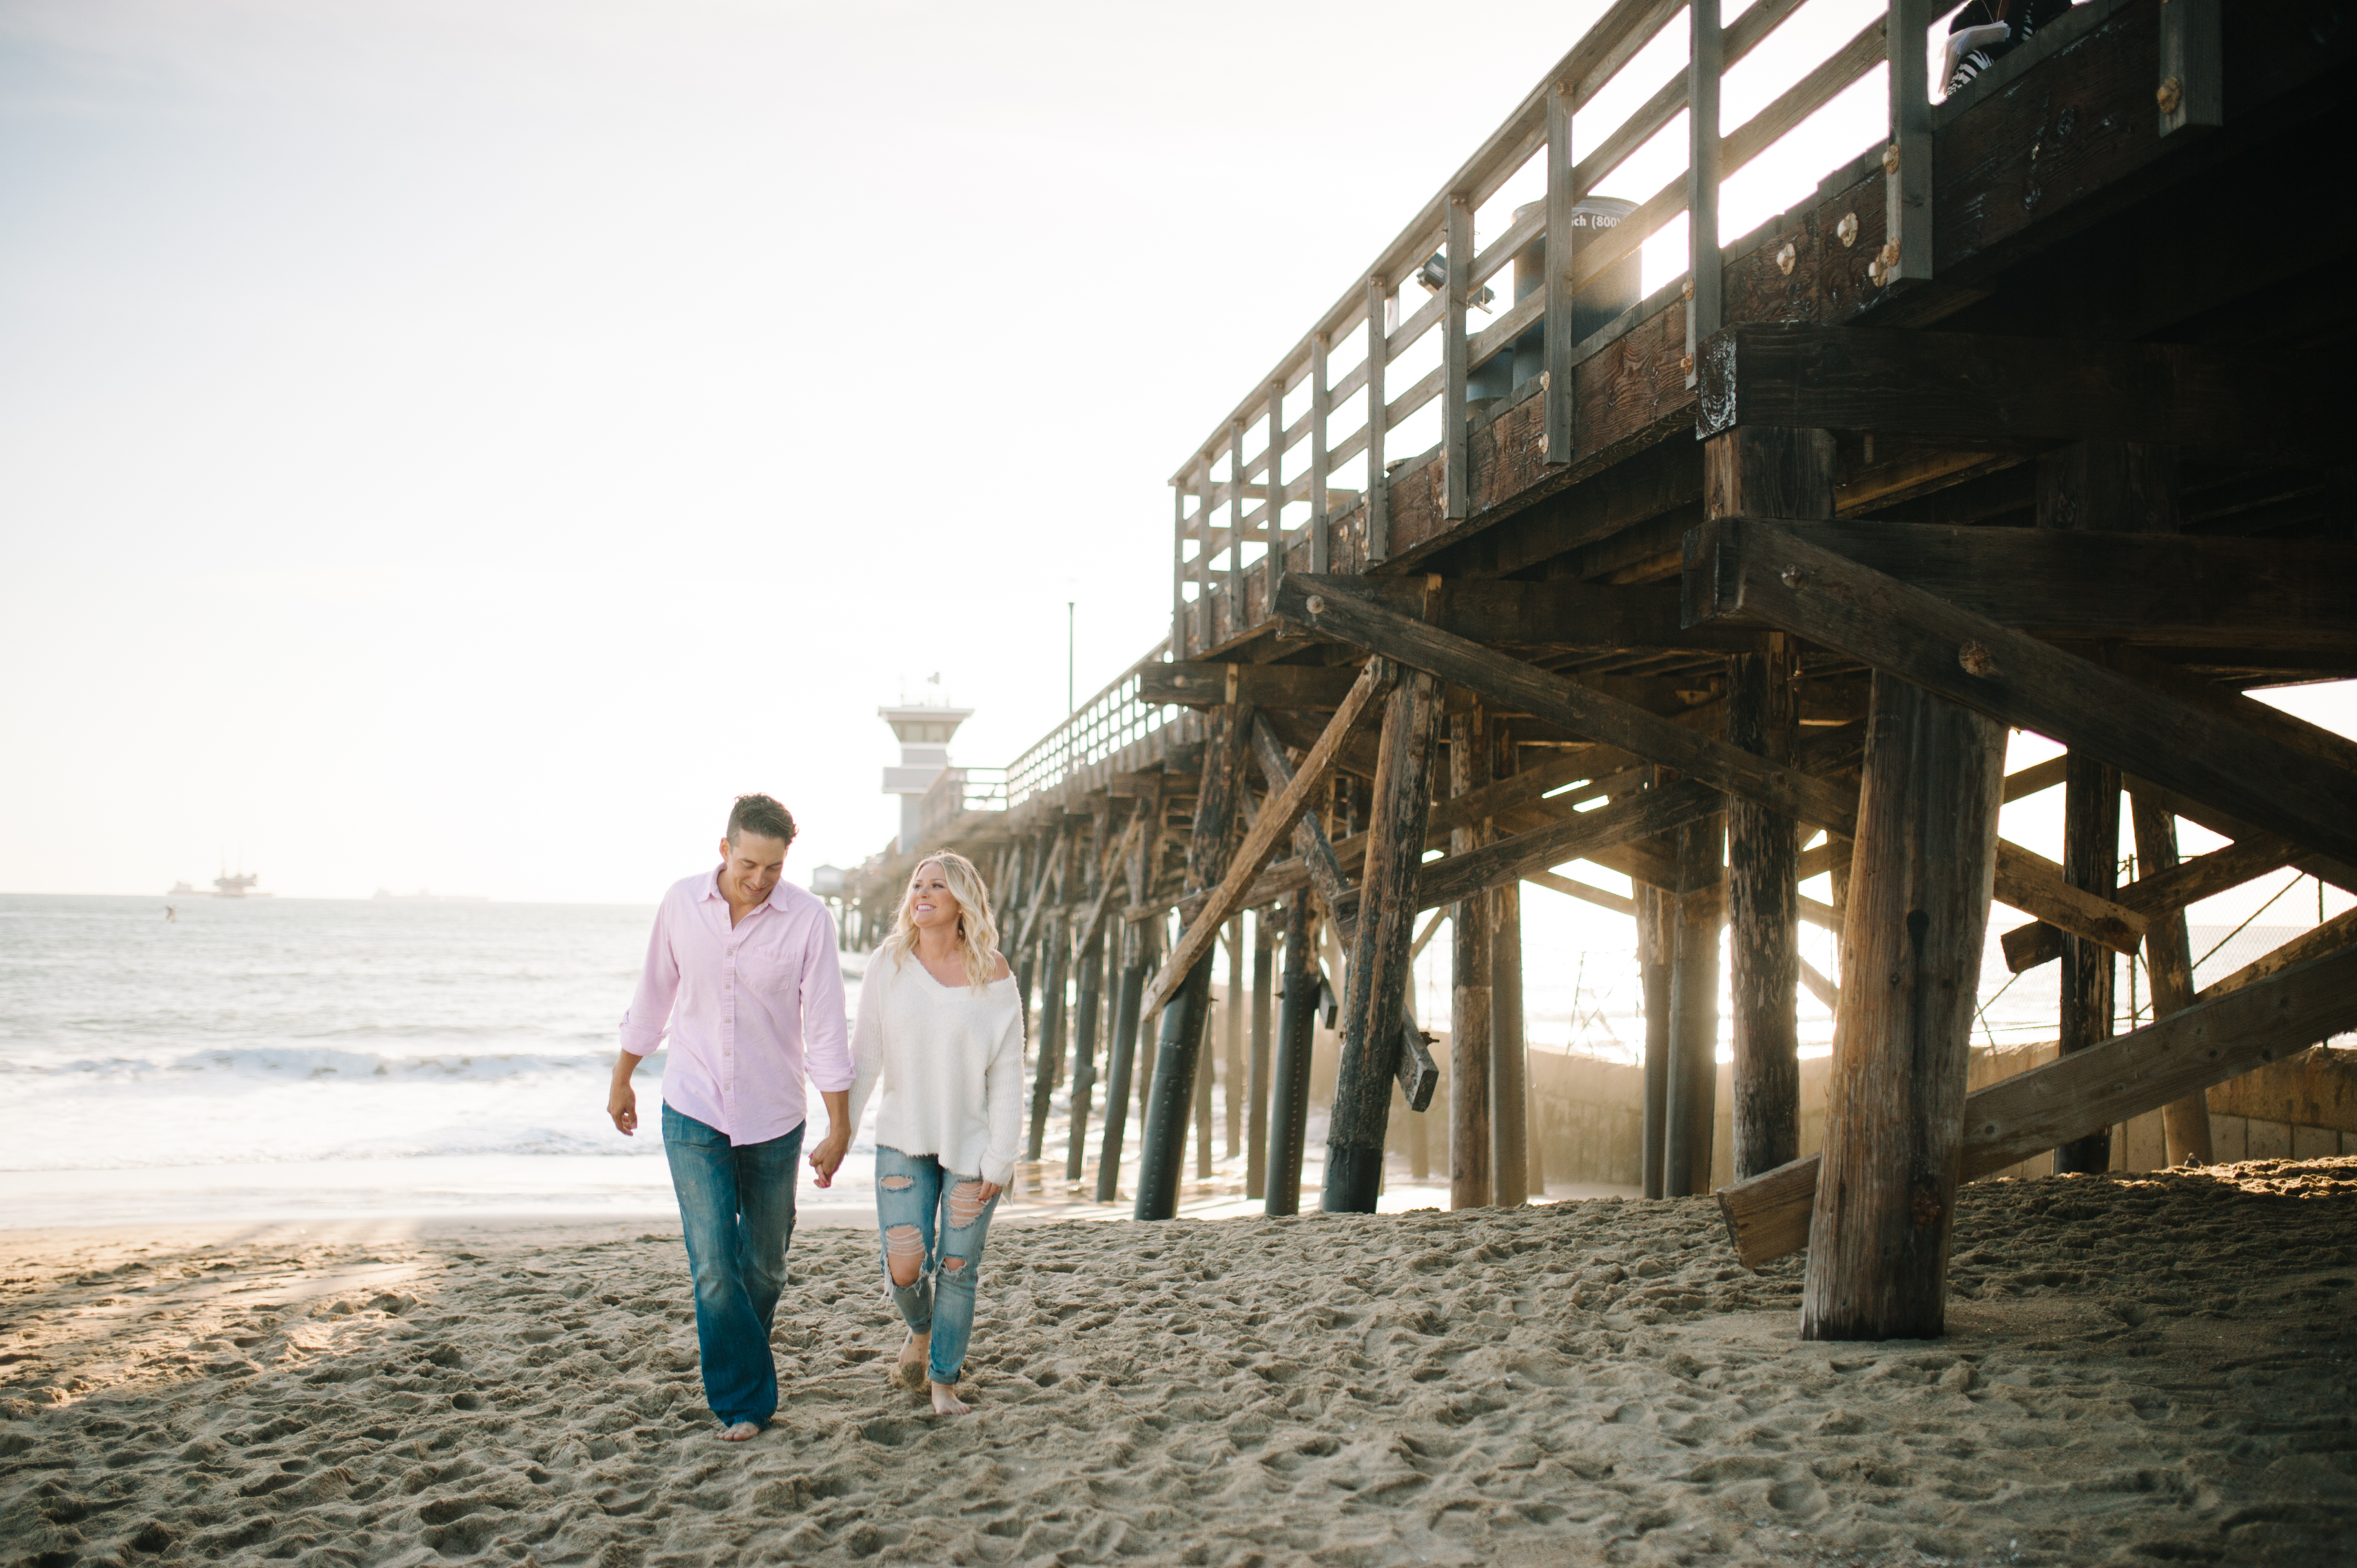 Los Angeles and San Diego engagement session with magazine model couple in Seal Beach at the Pier.